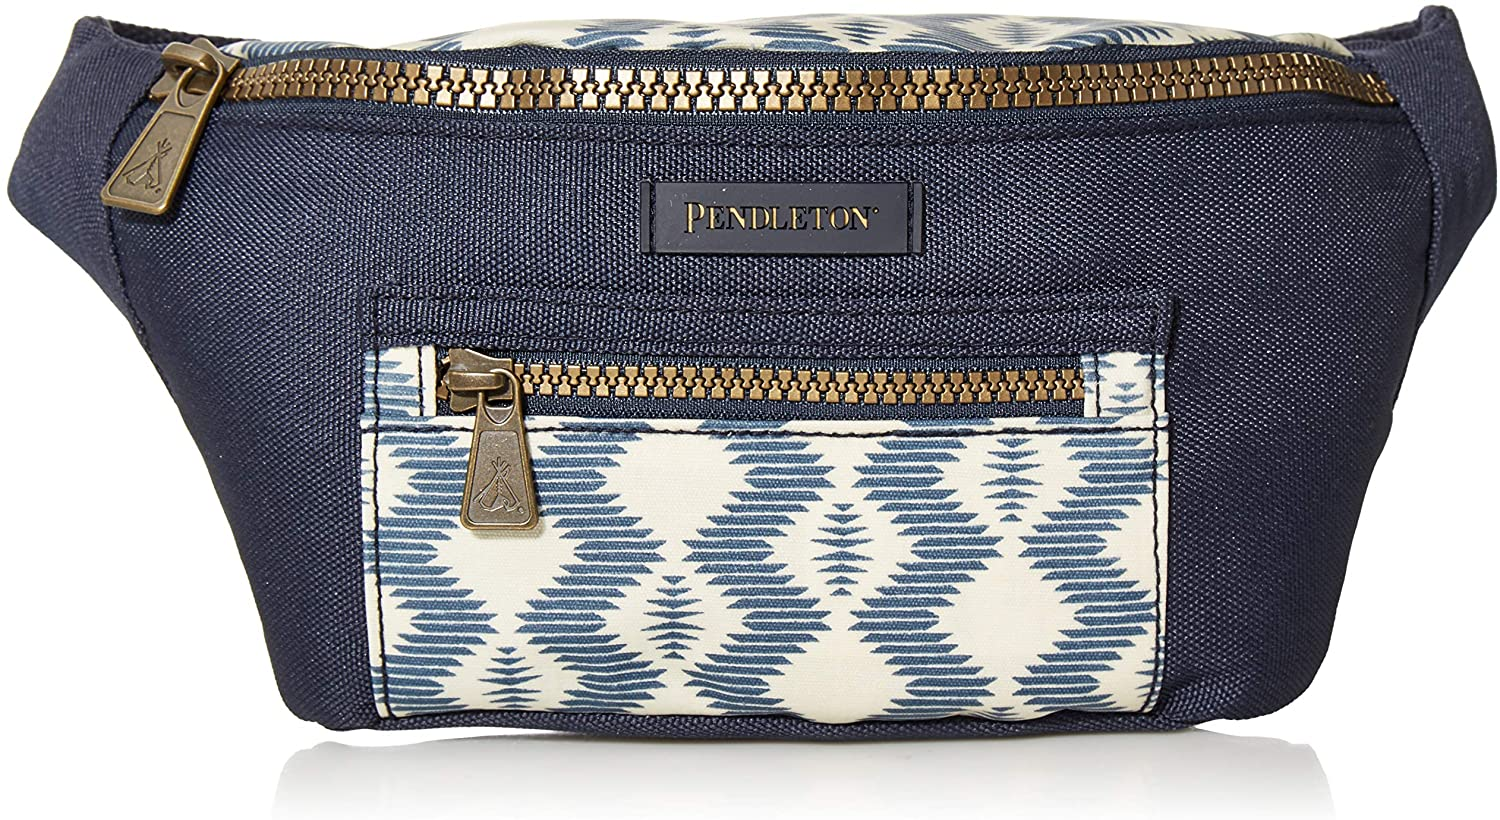 Pendleton Women's Canopy Canvas Waist Pack, Zigzag River, One Size